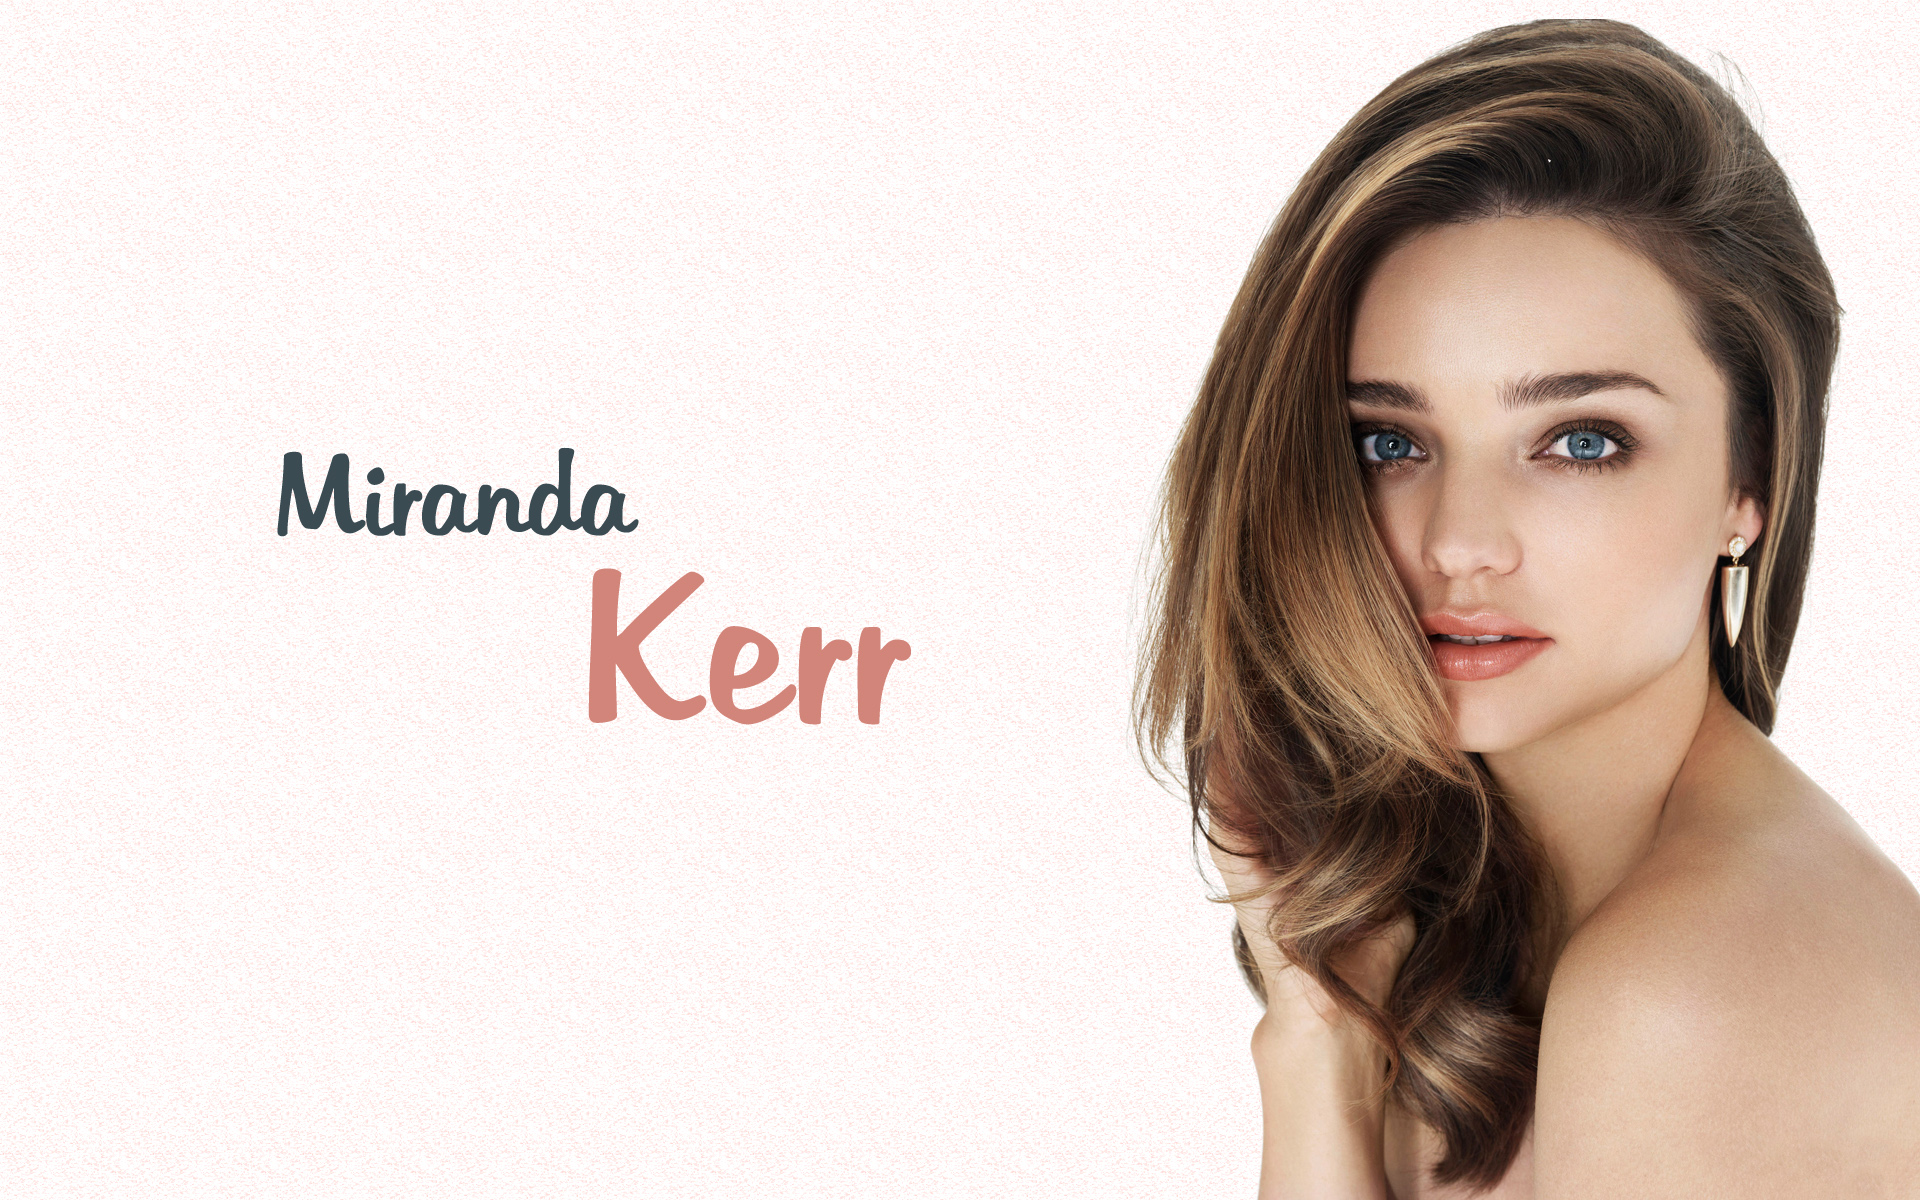 kerr latest wallpapers - photo #34